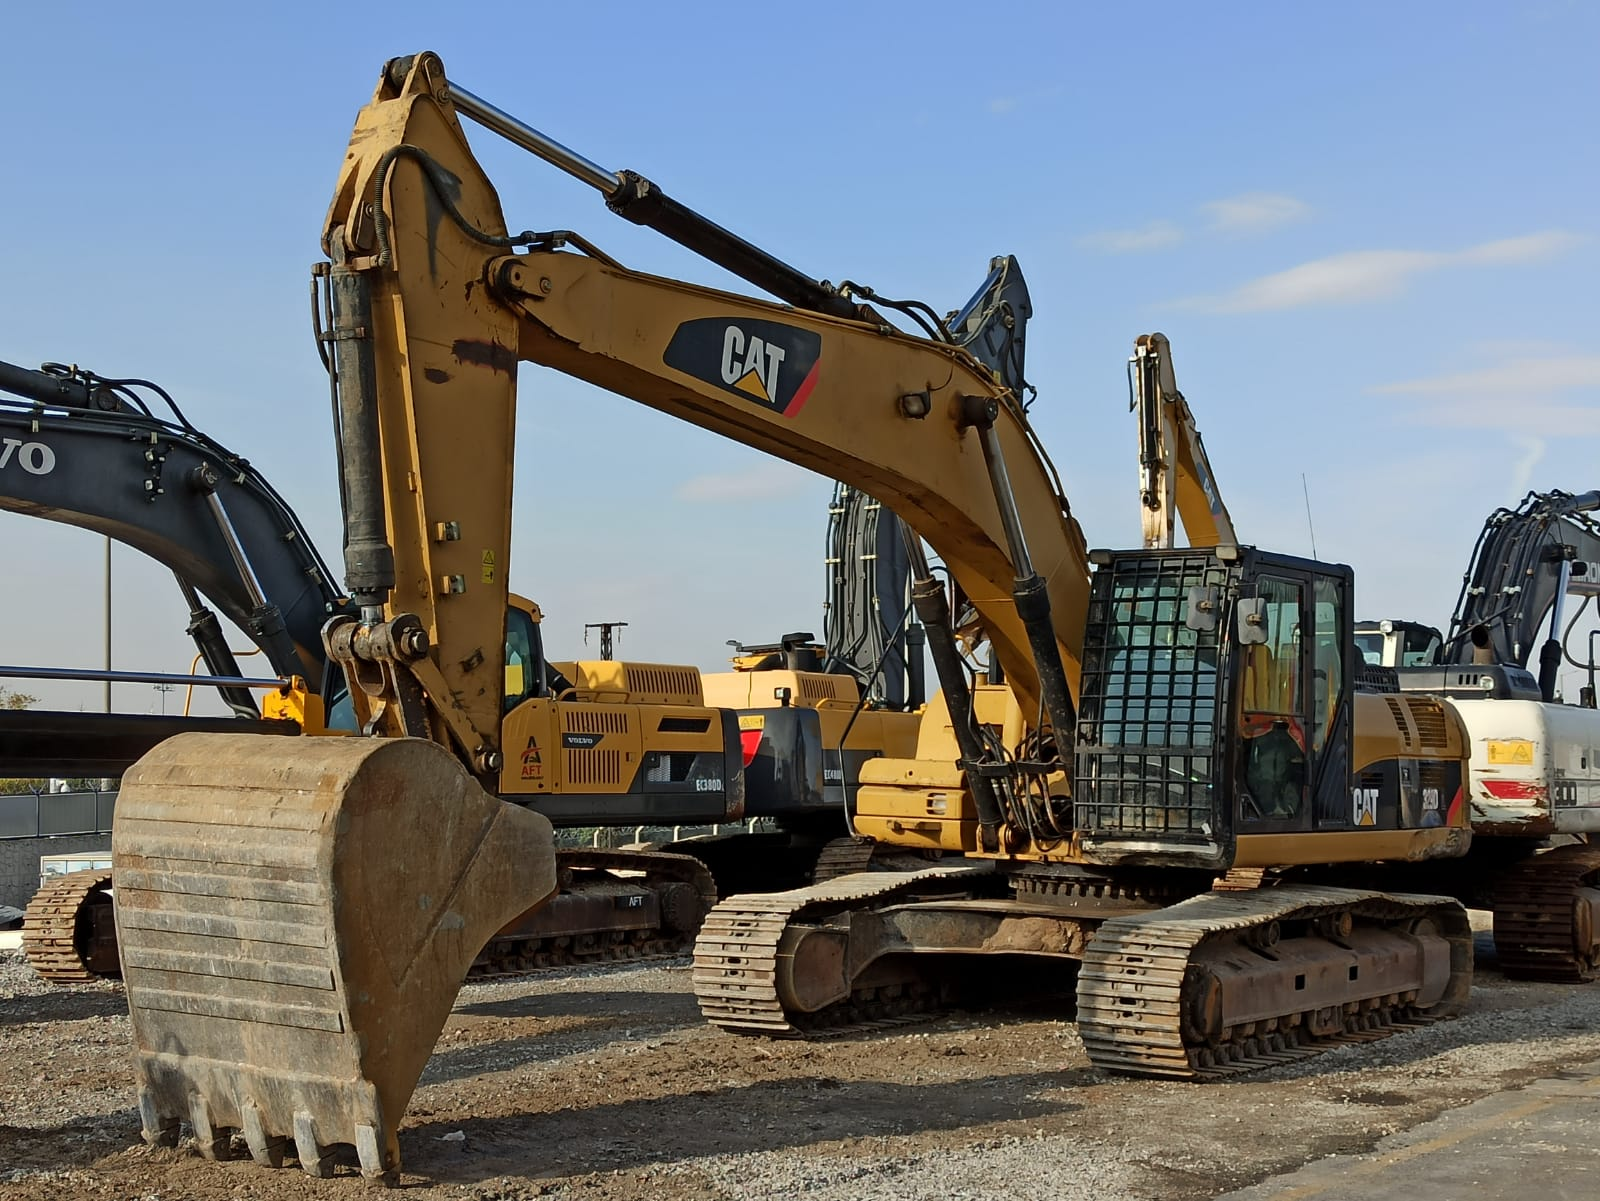 2012 CATERPILLAR 329 DL EXCAVATOR